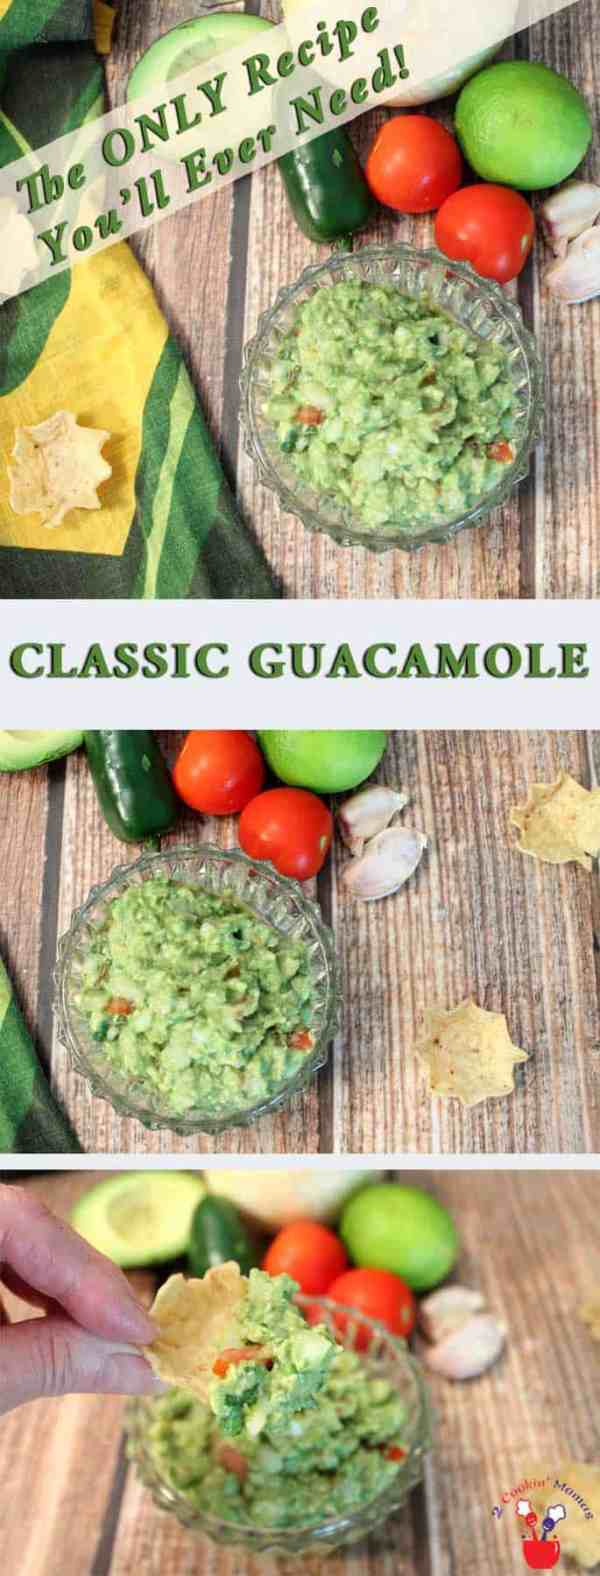 Classic-Guacamole-main | 2 Cookin Mamas The only recipe you'll ever need for a deliciously fresh, flavorful & delicious guacamole. So easy & perfect for any occasion. #recipe #appetizer #avocados